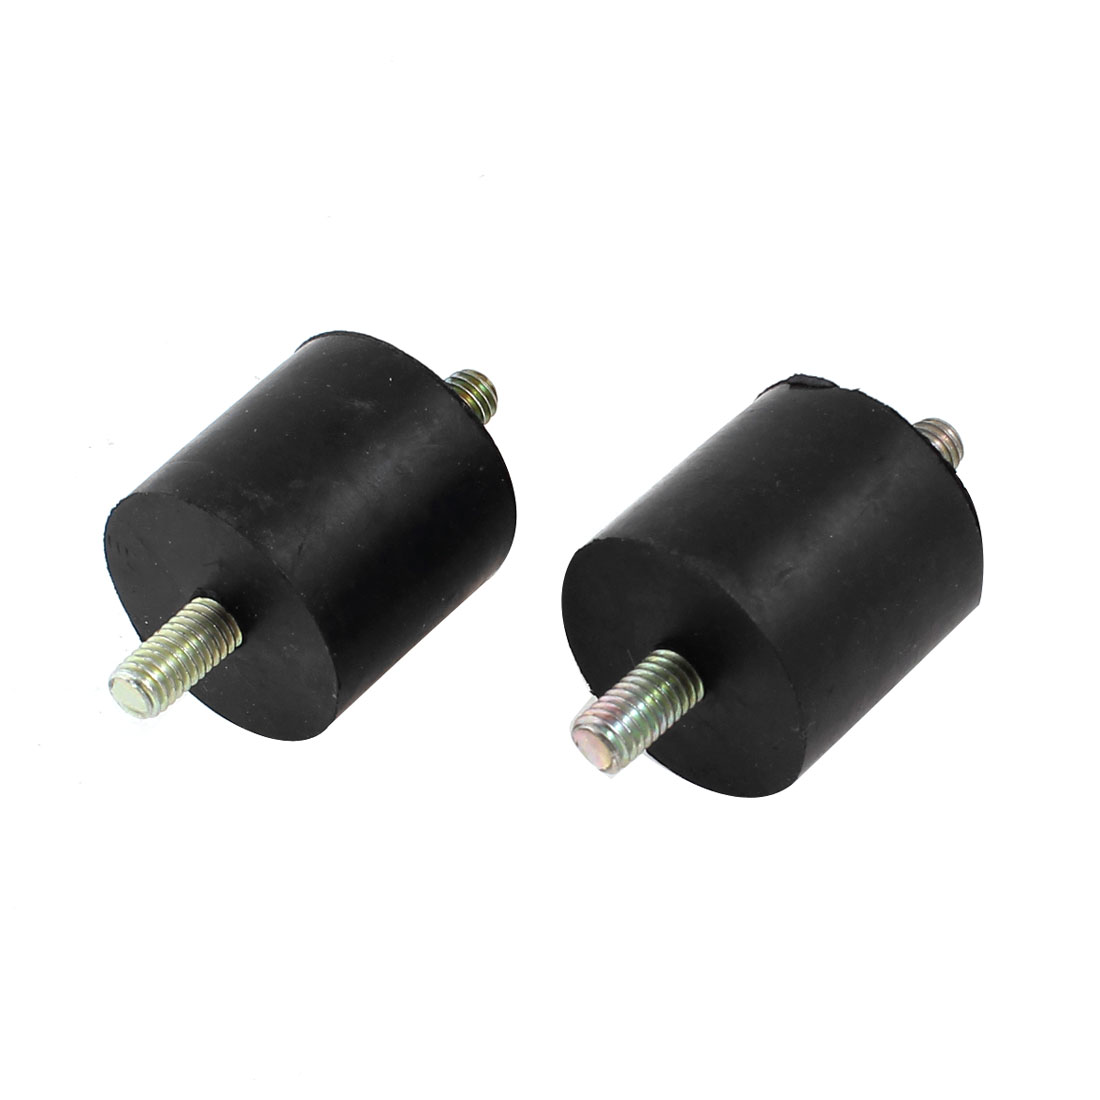 6mm x 12mm Double Male Thread Rubber Vibration Damper Isolator Mount 2 Pcs